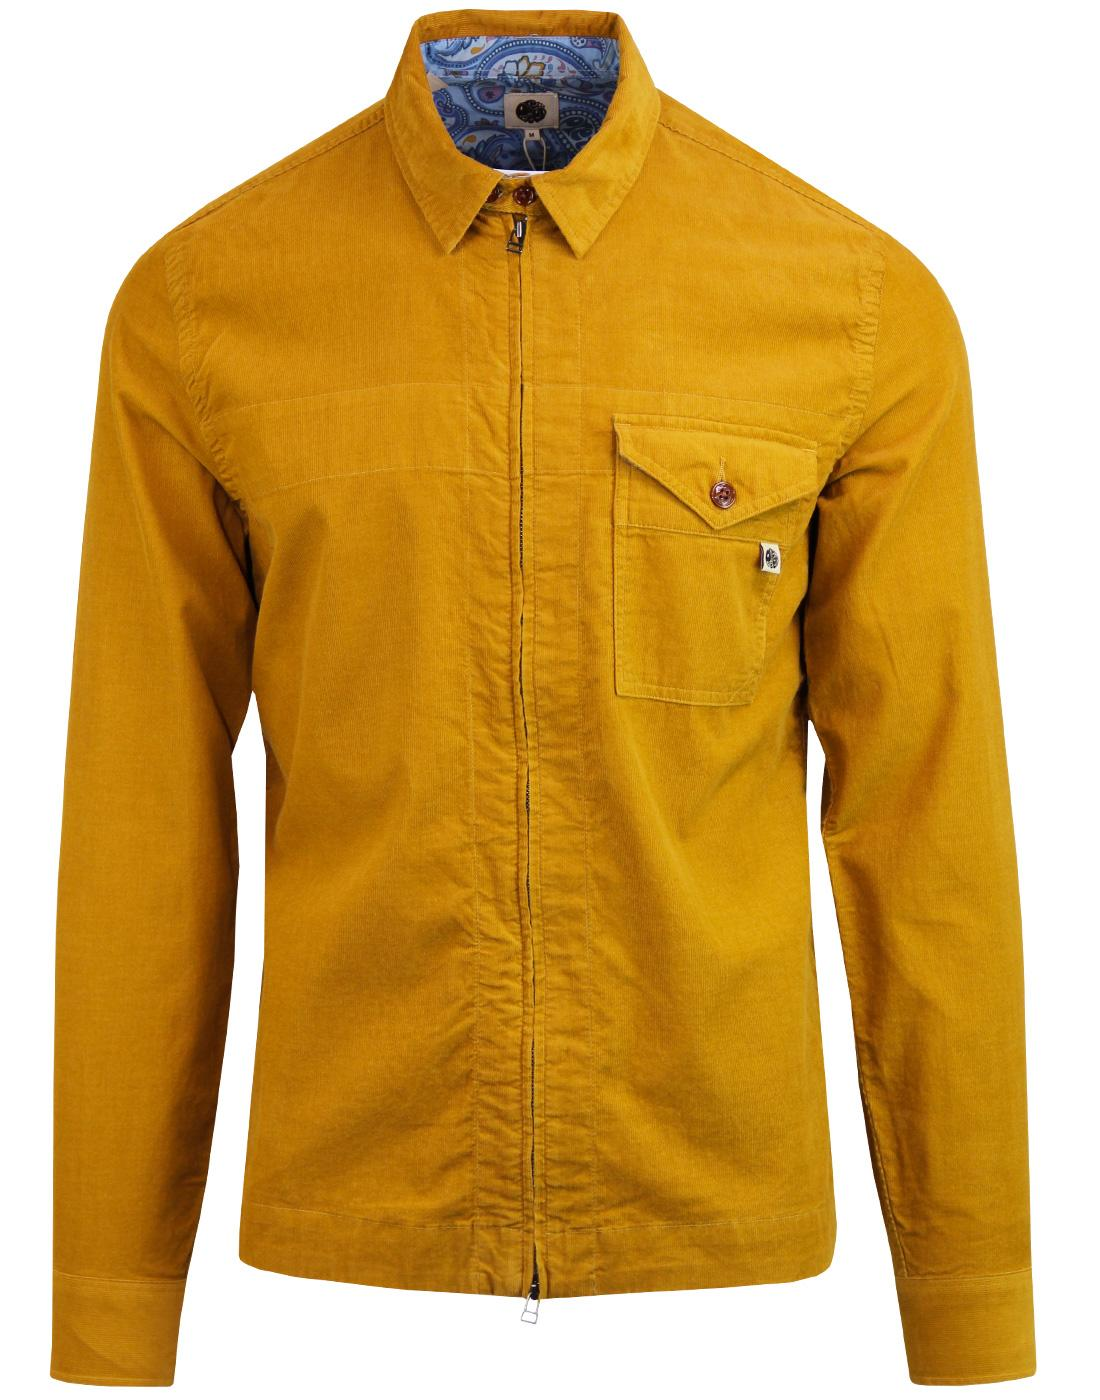 PRETTY GREEN Retro Mod Cord Zip Through Shirt (Y)